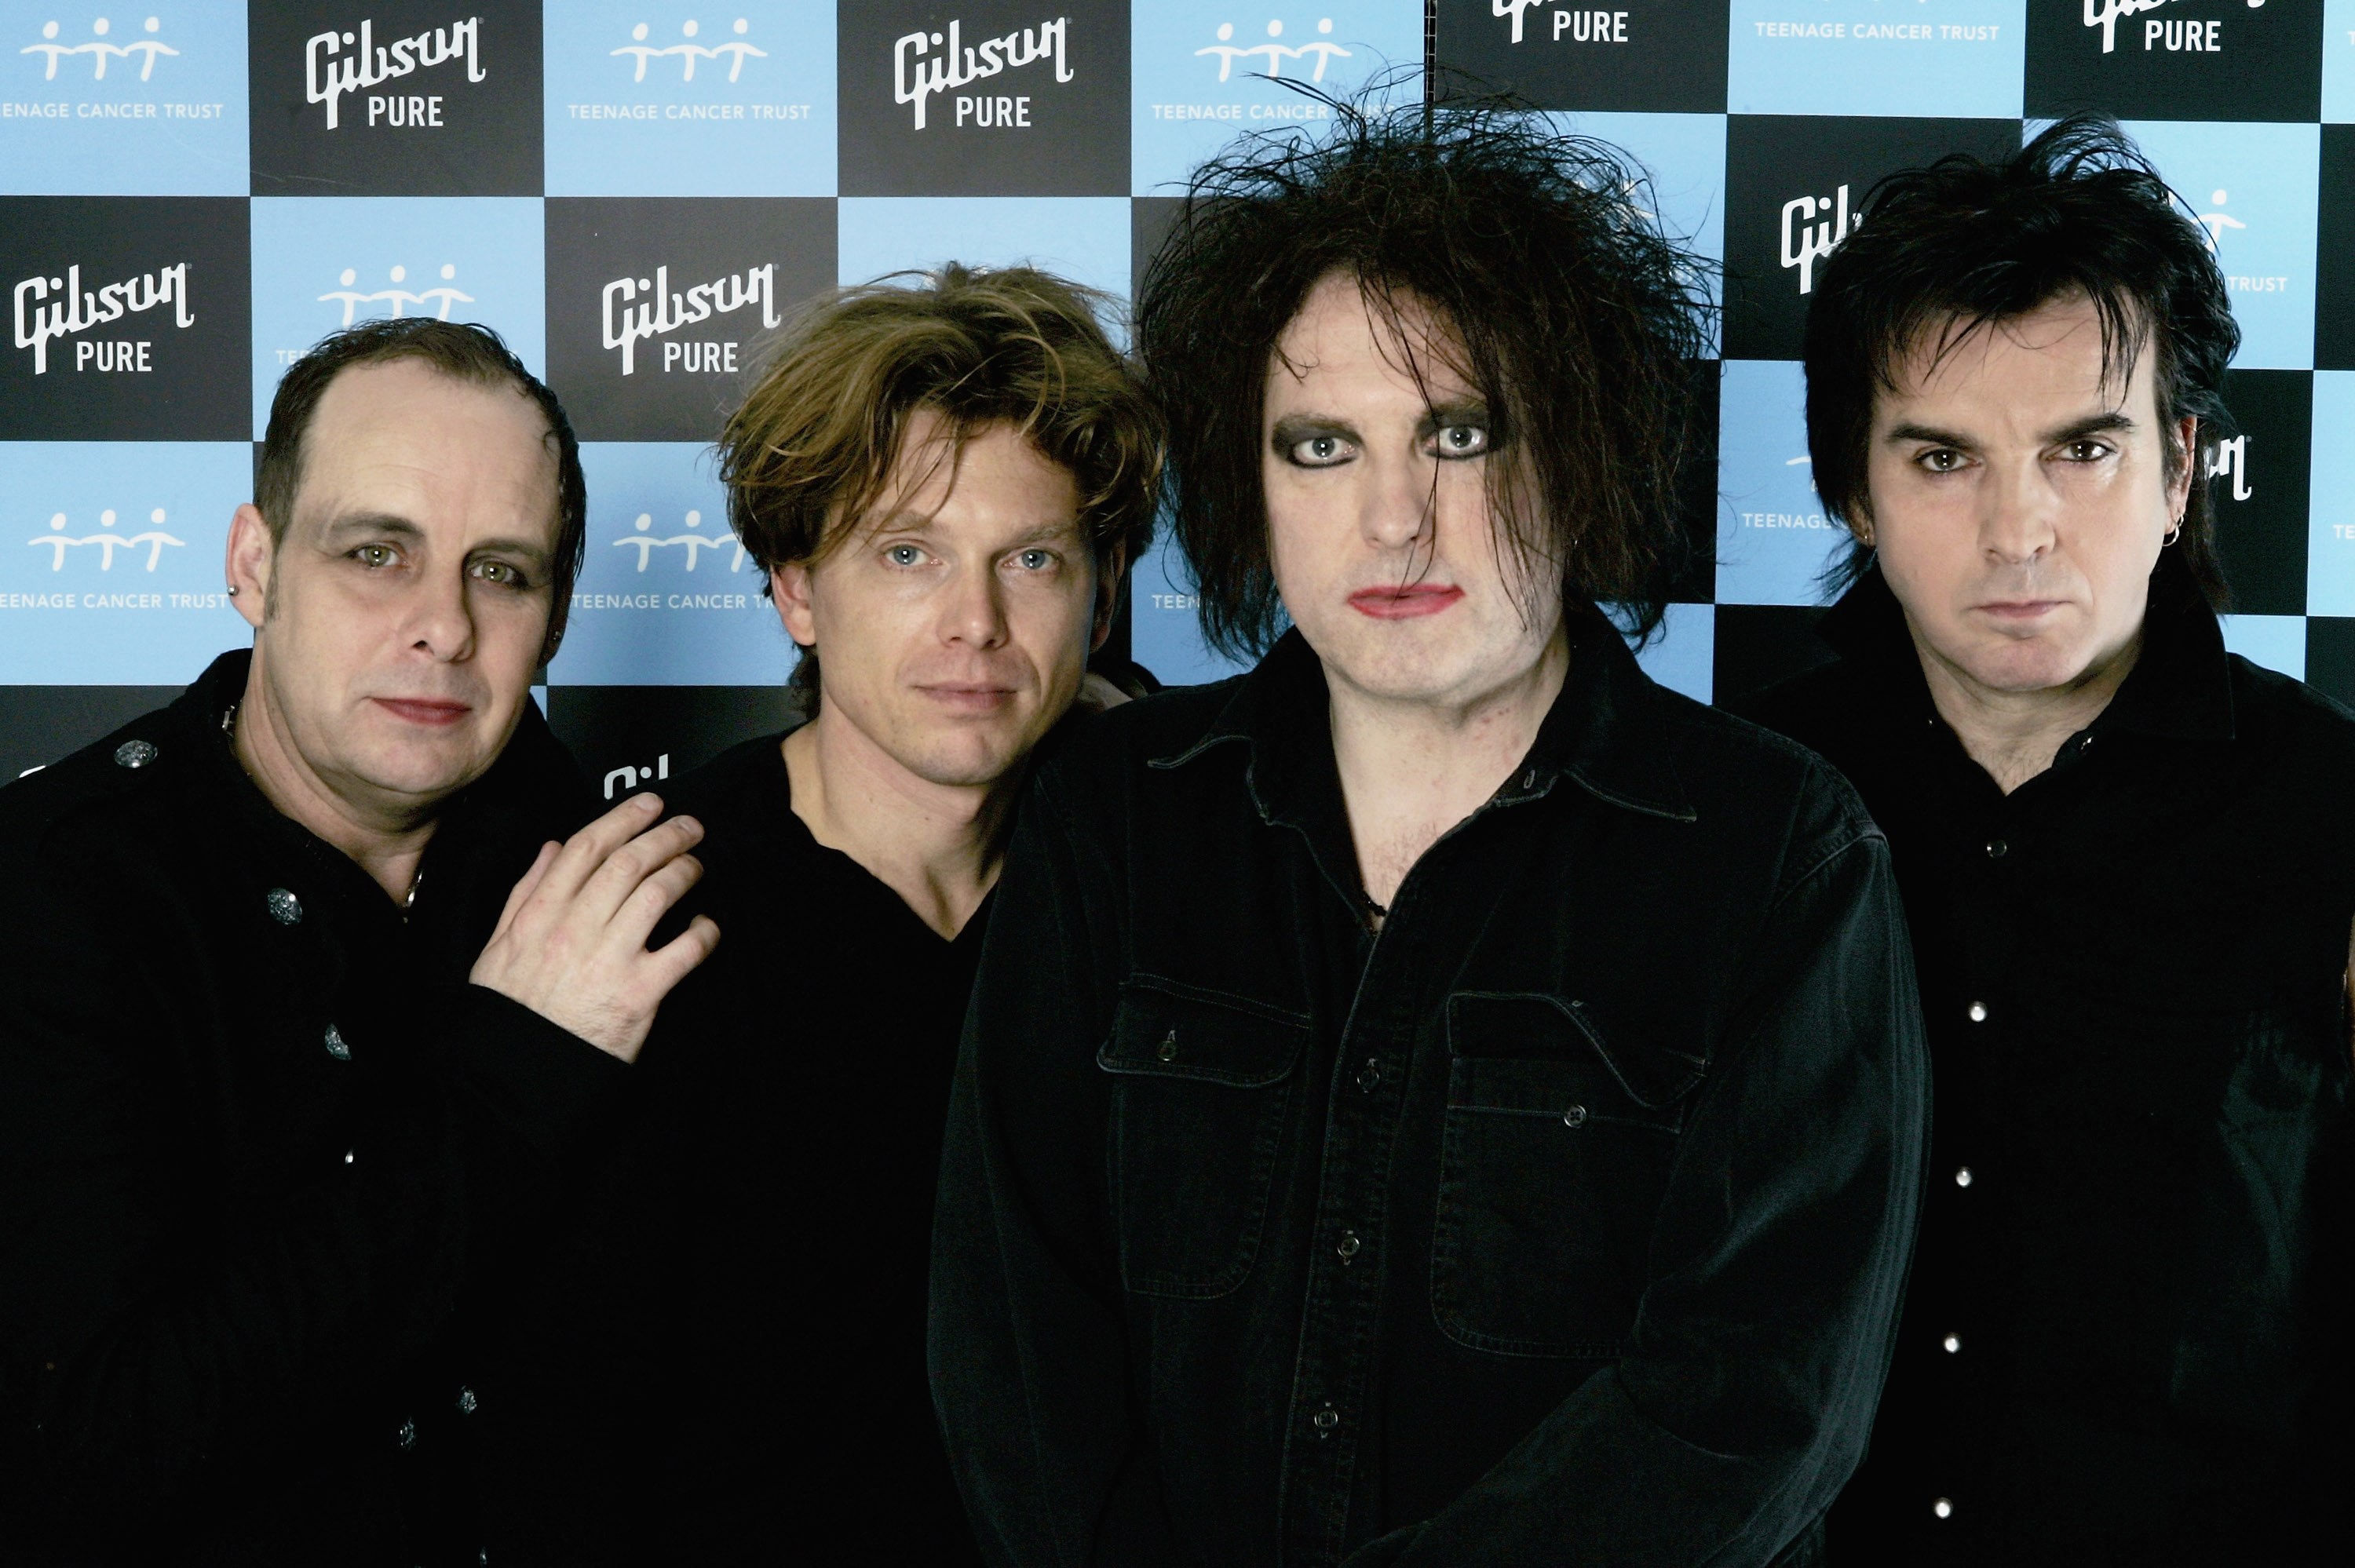 Someone's created a singalong guide to buying albums by The Cure